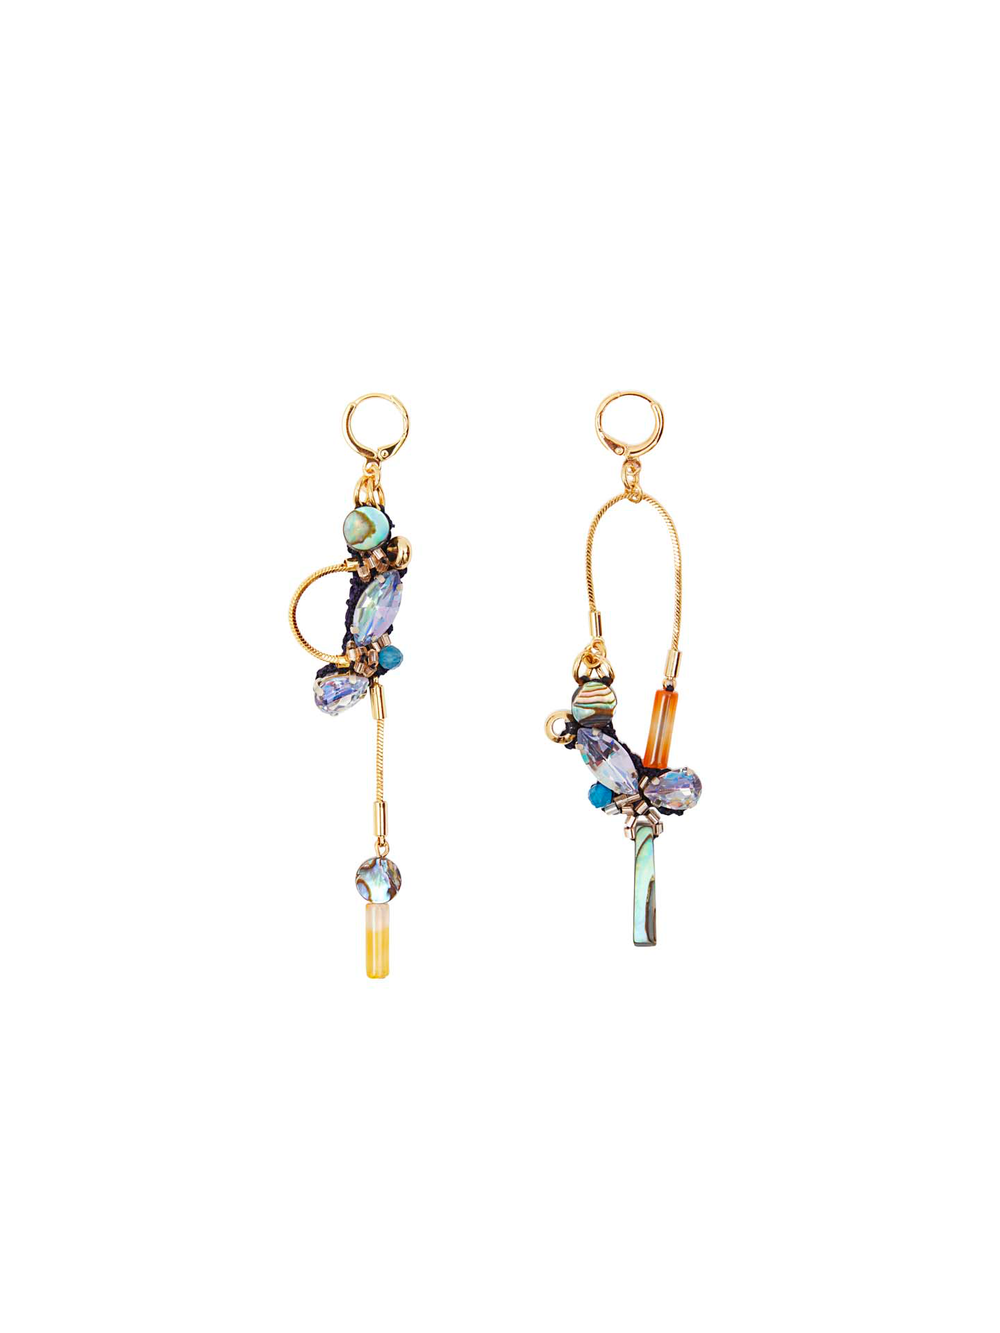 Eve Friend Earrings